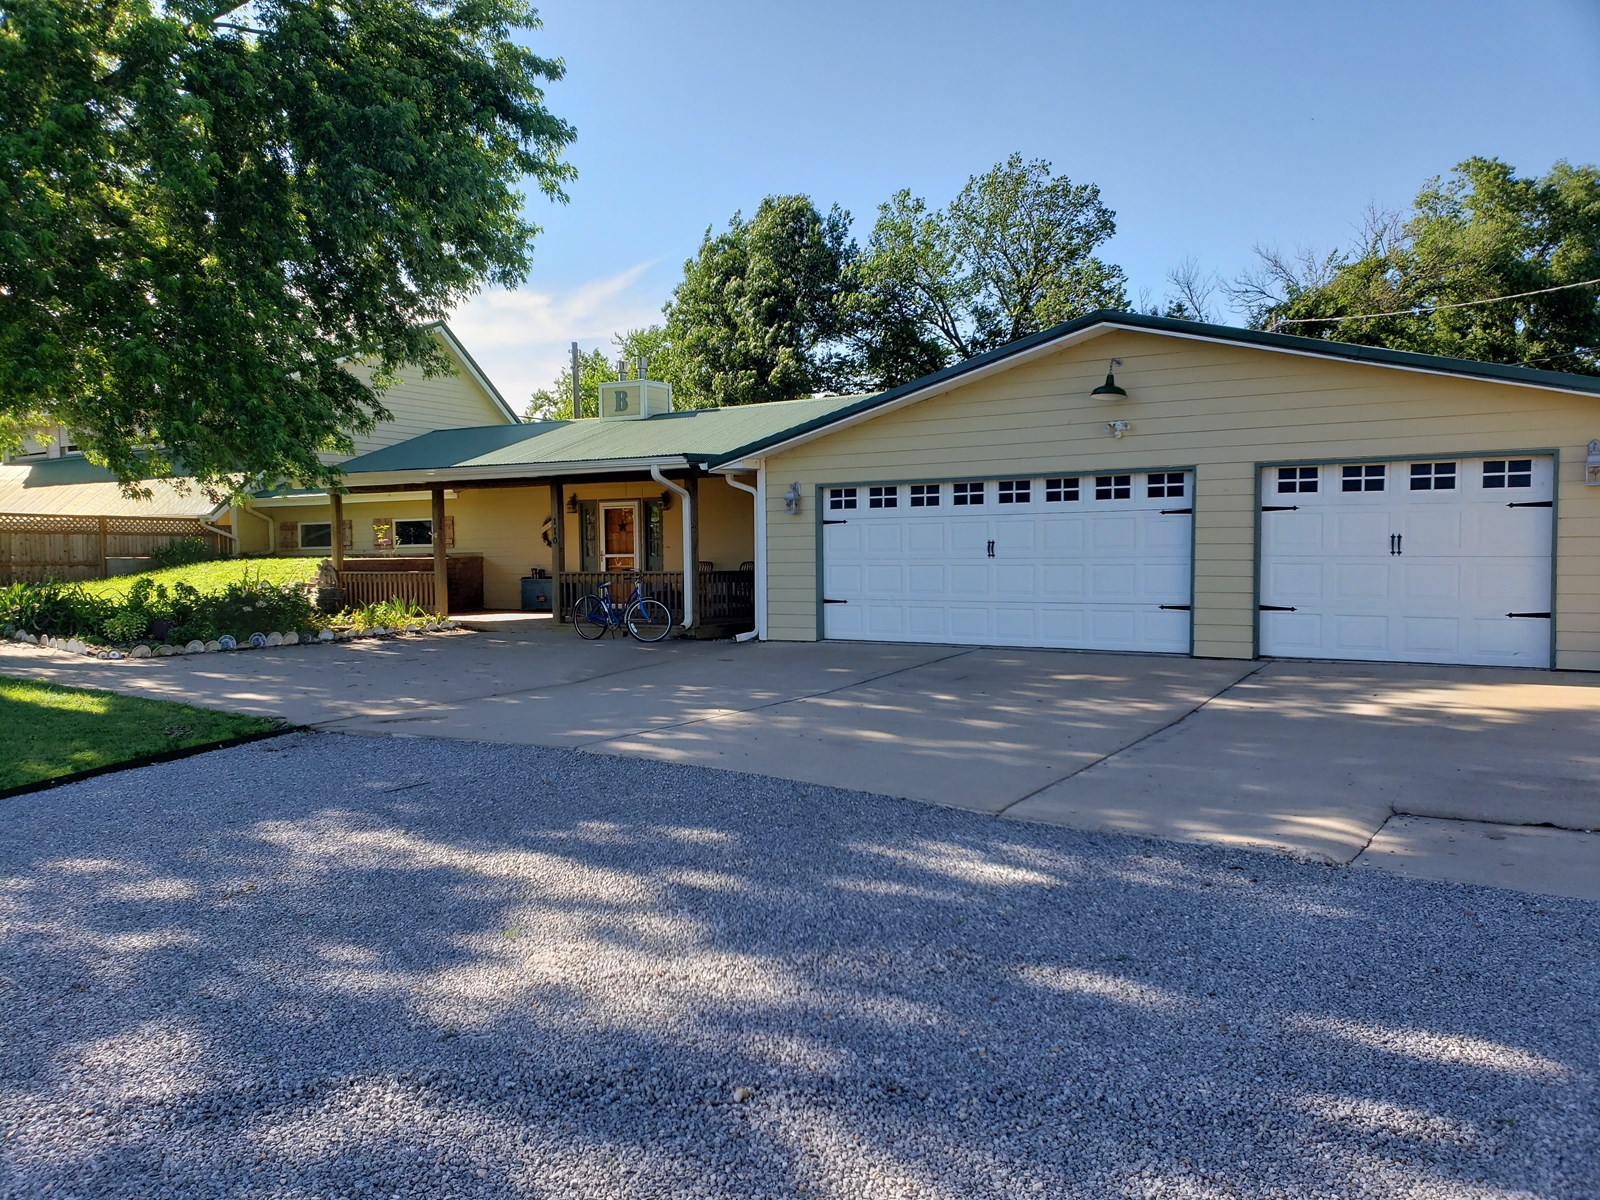 Home for sale in Medicine Lodge KS